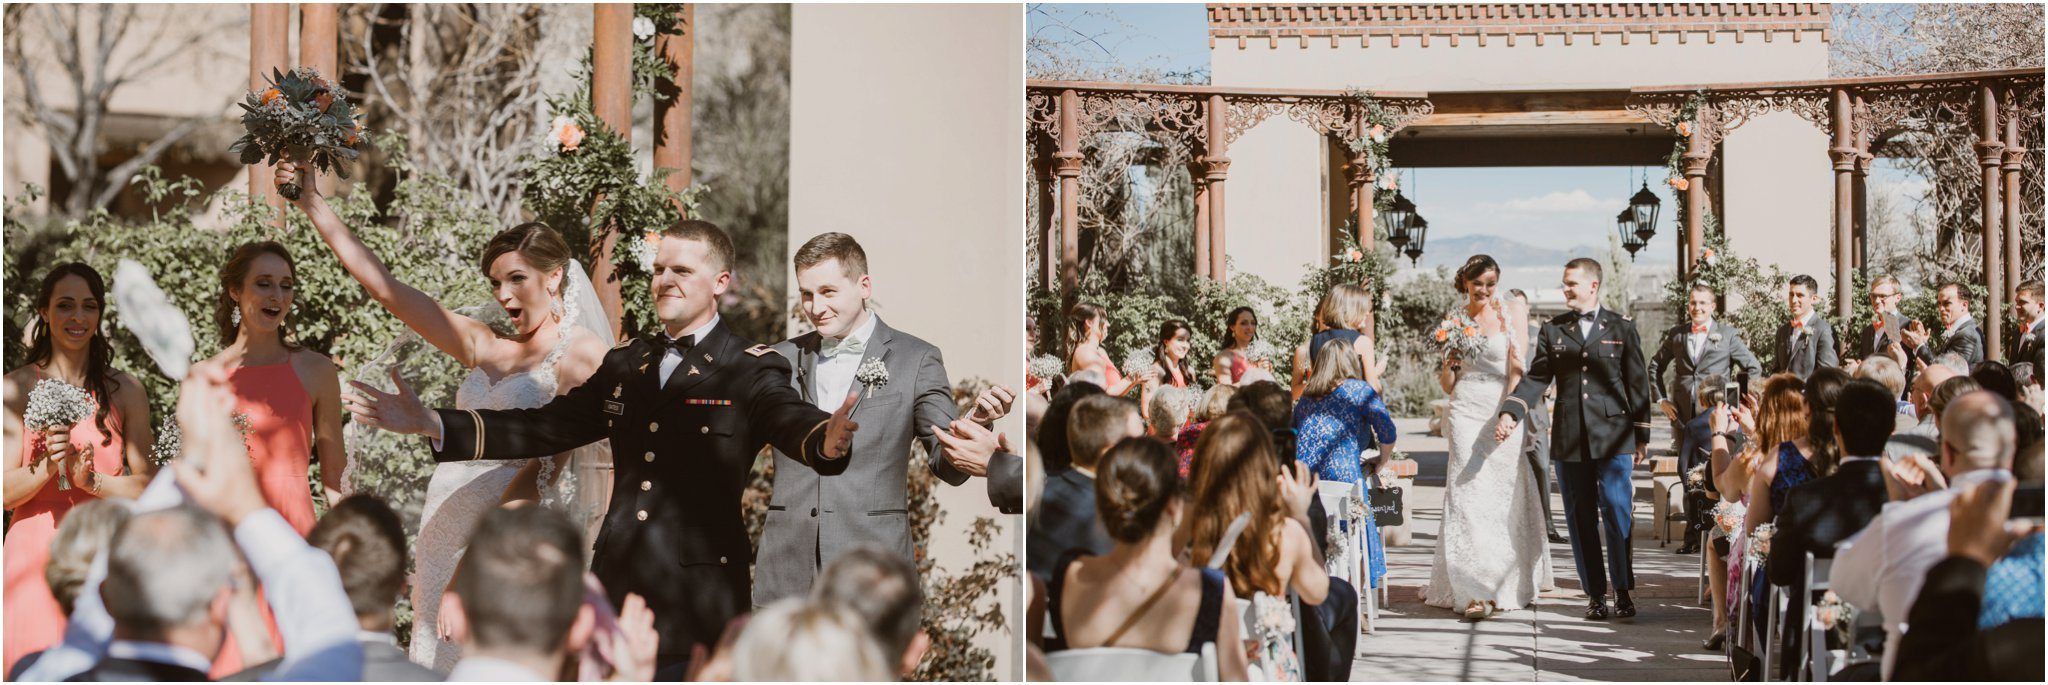 30Blue Rose Photography_ Albuquerque Wedding Photographer_ Santa Fe Wedding Photographers